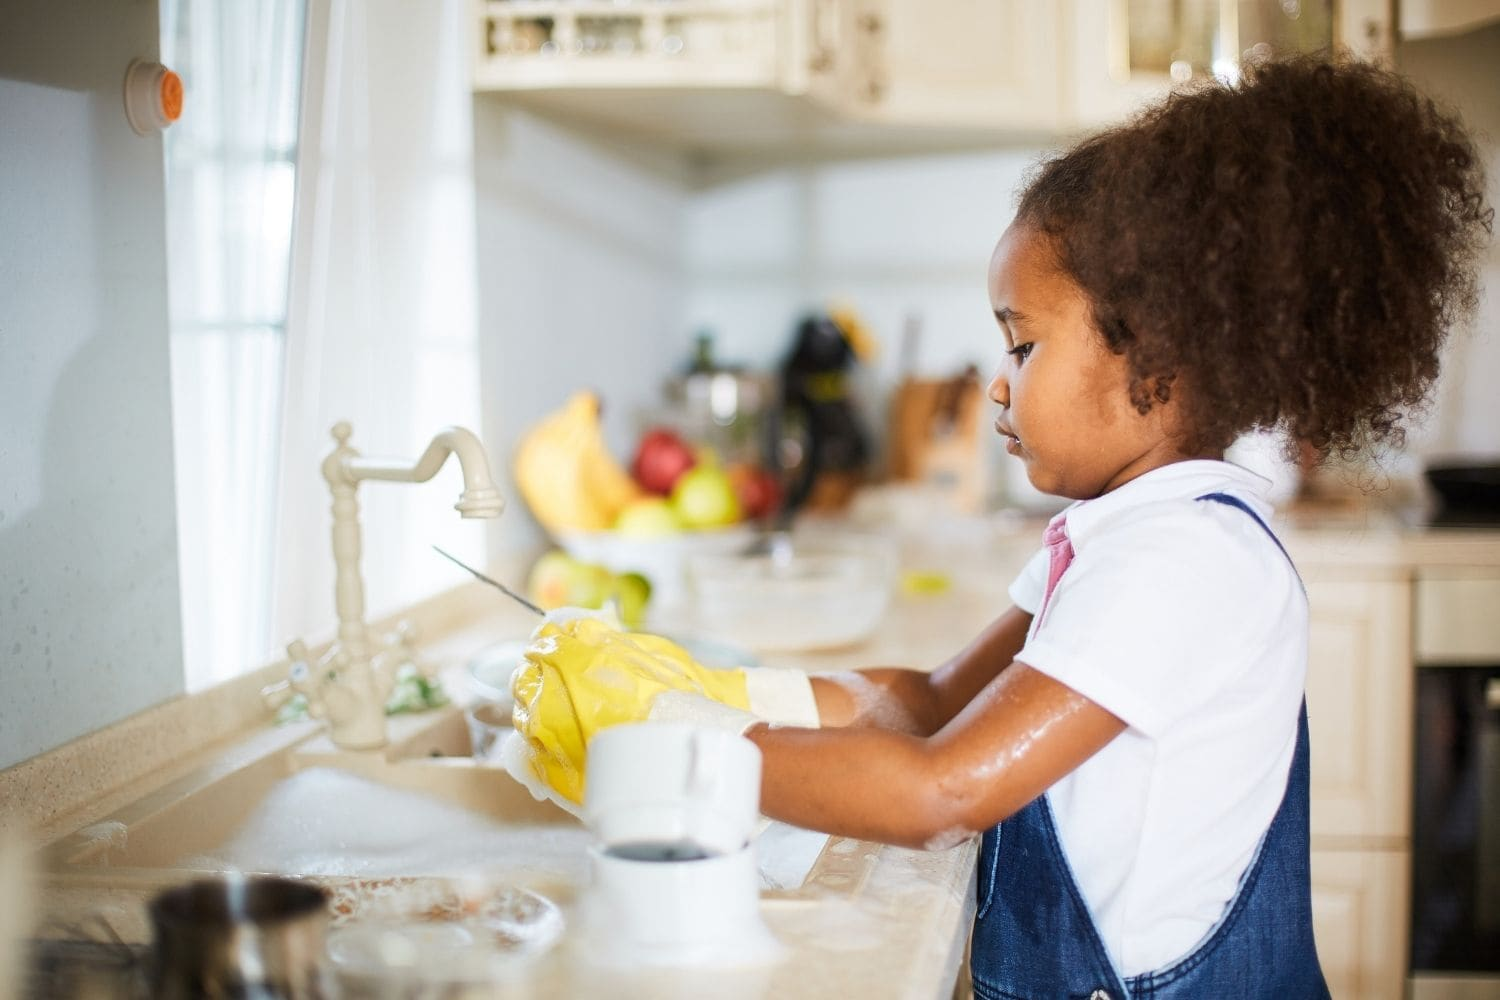 How Do Chores Support My Child's Overall Development